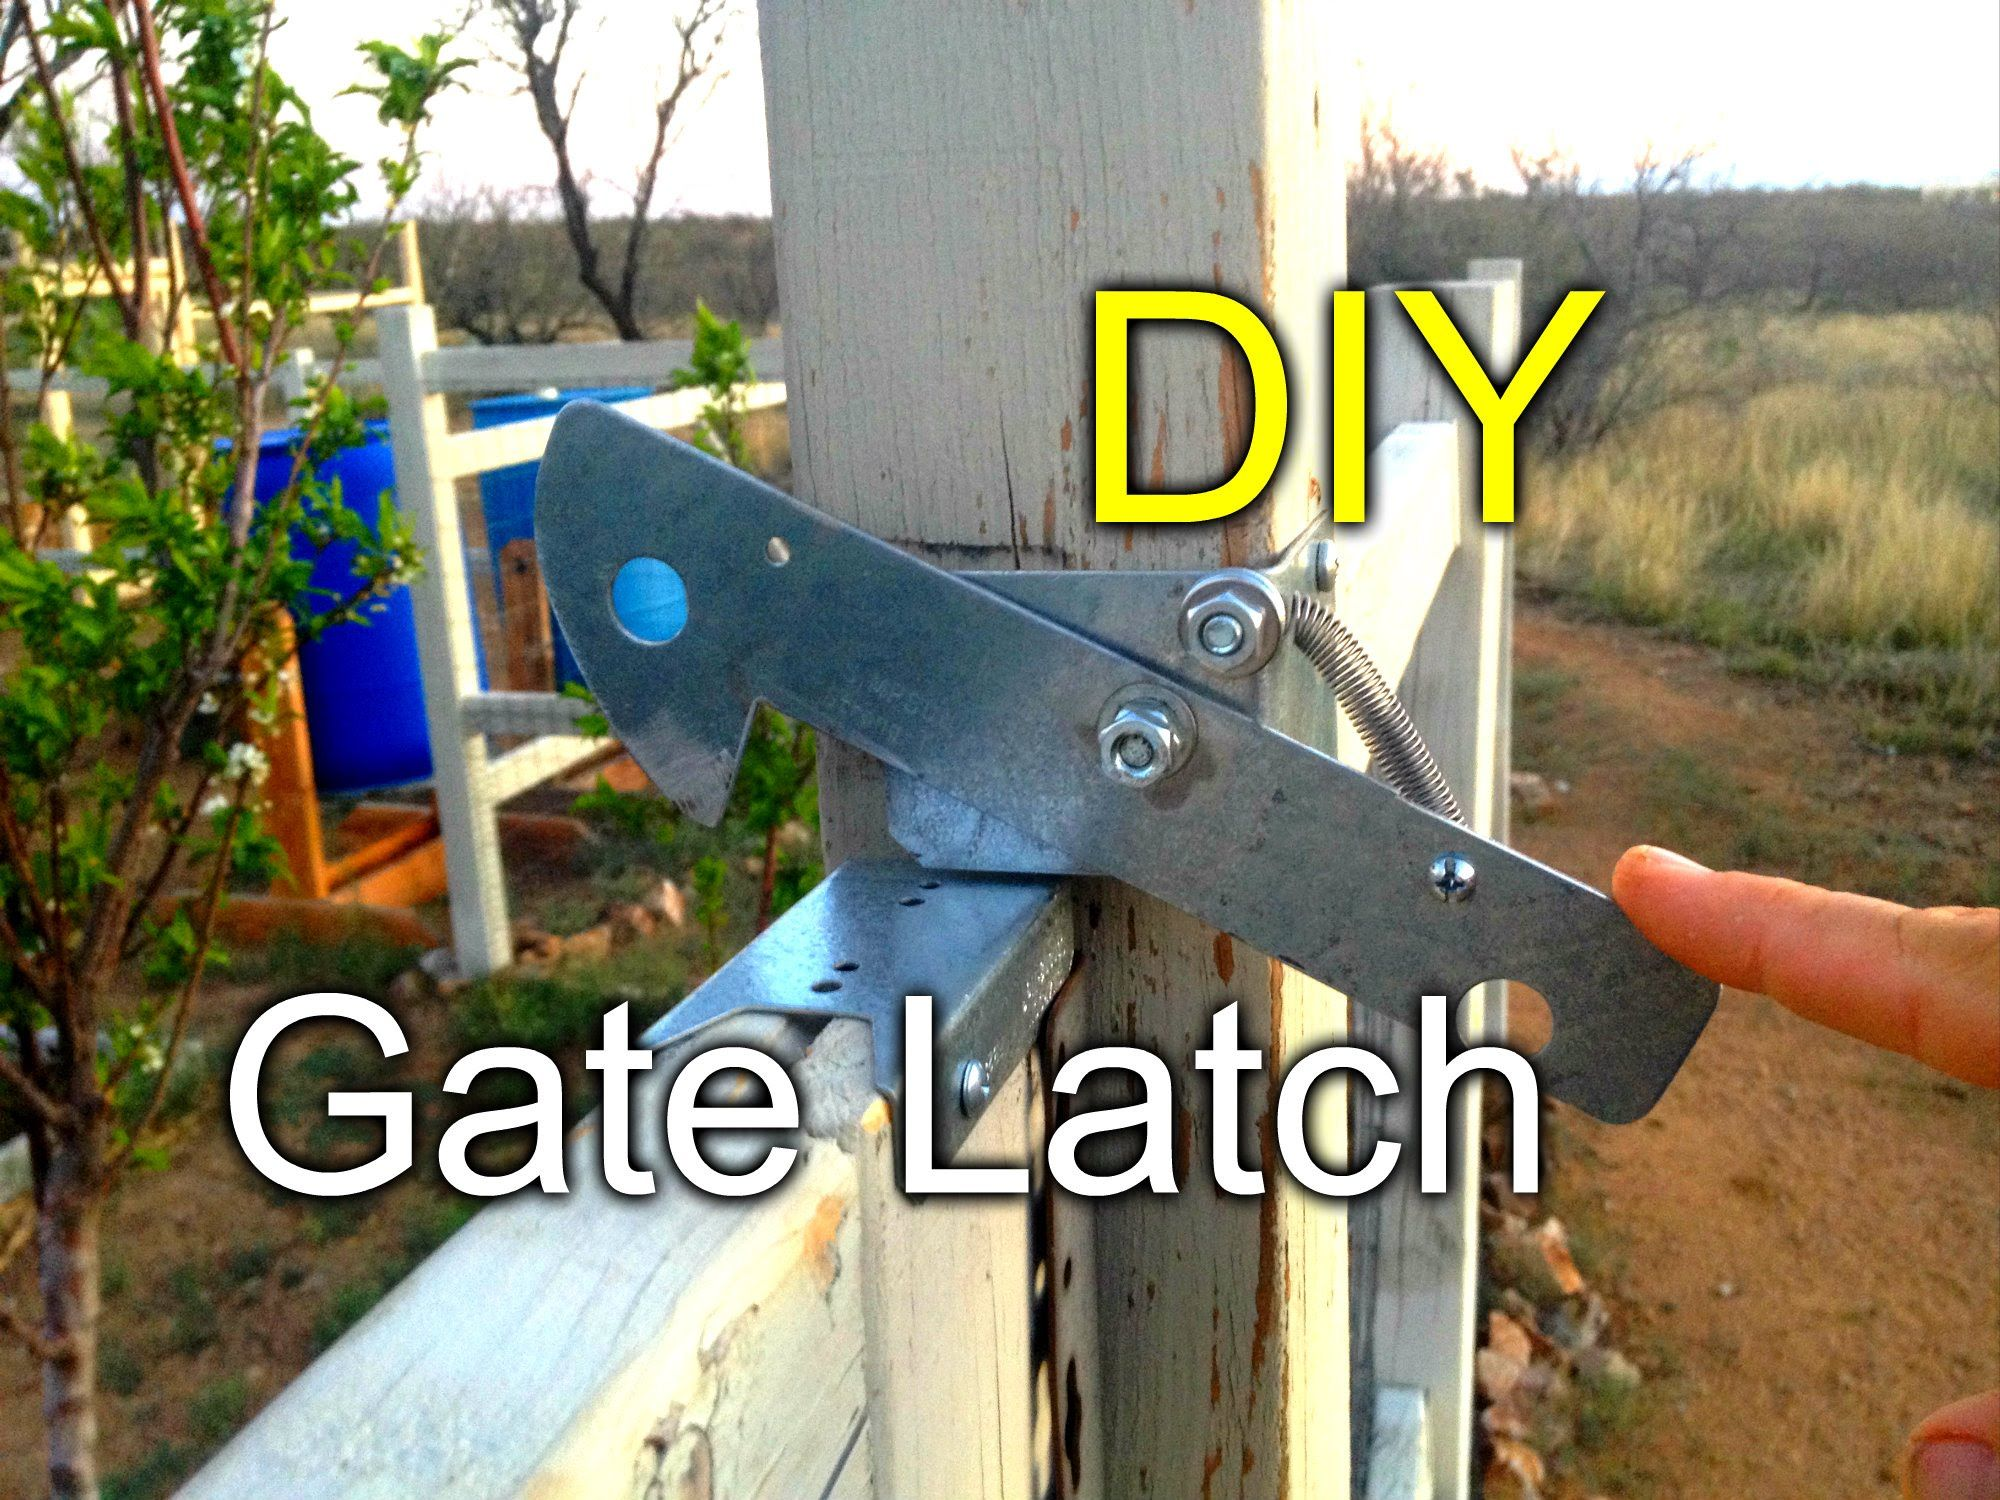 Diy Gate Latch For My Garden Fence Diy Gate Gate Latch Diy